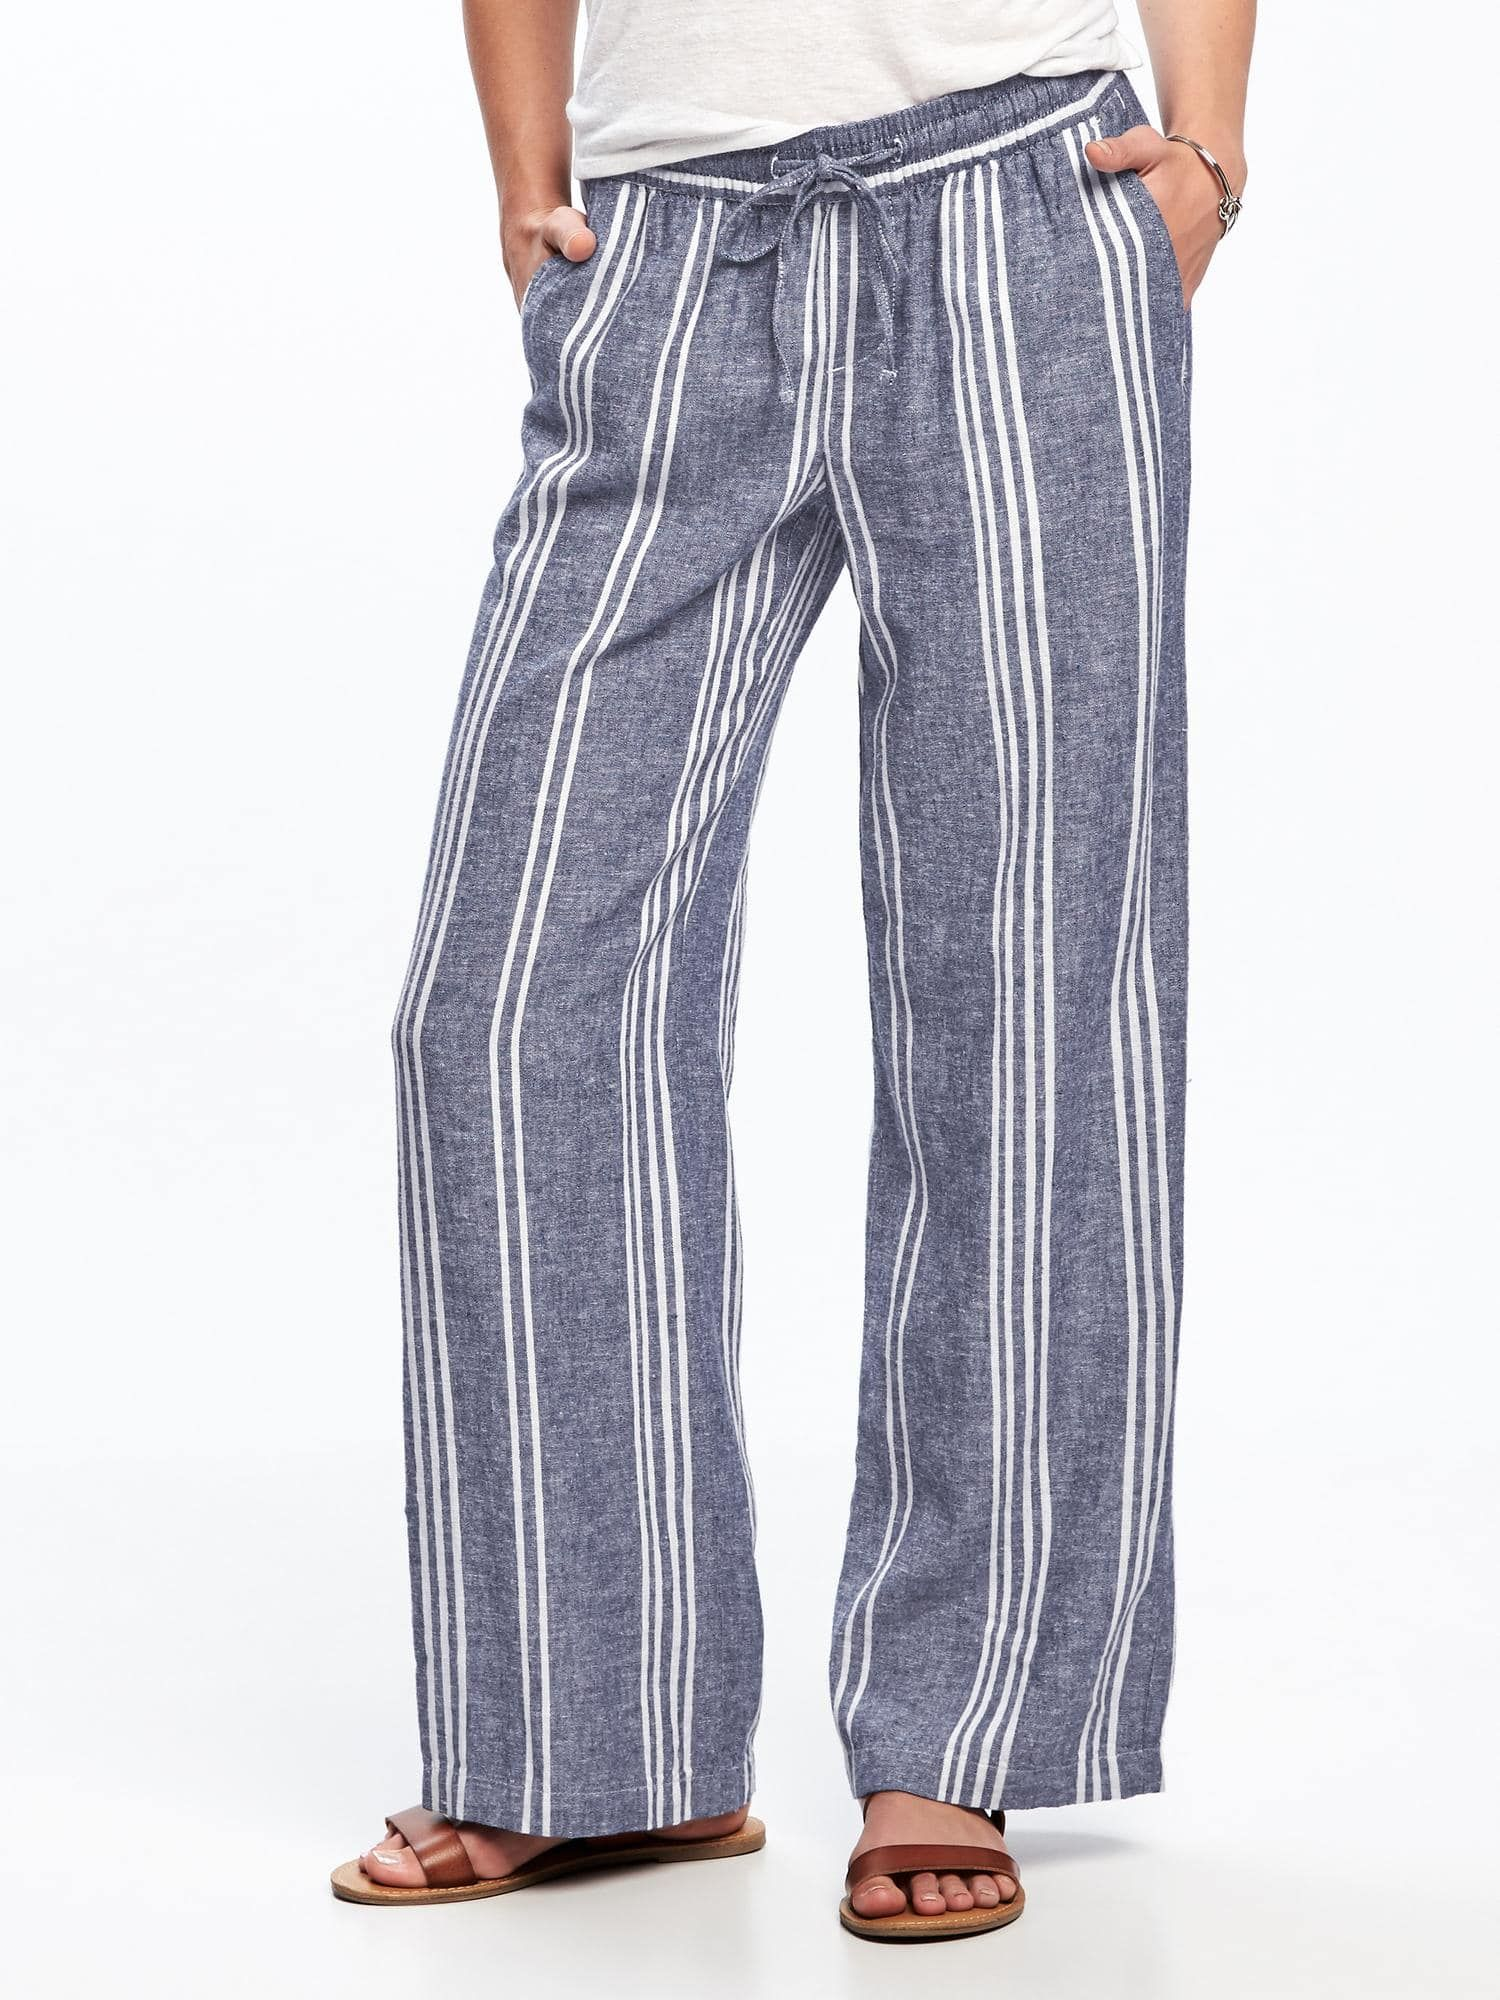 9e407d1fb4 Wide-Leg Linen-Blend Pants for Women | Old Navy | Europe Travel ...